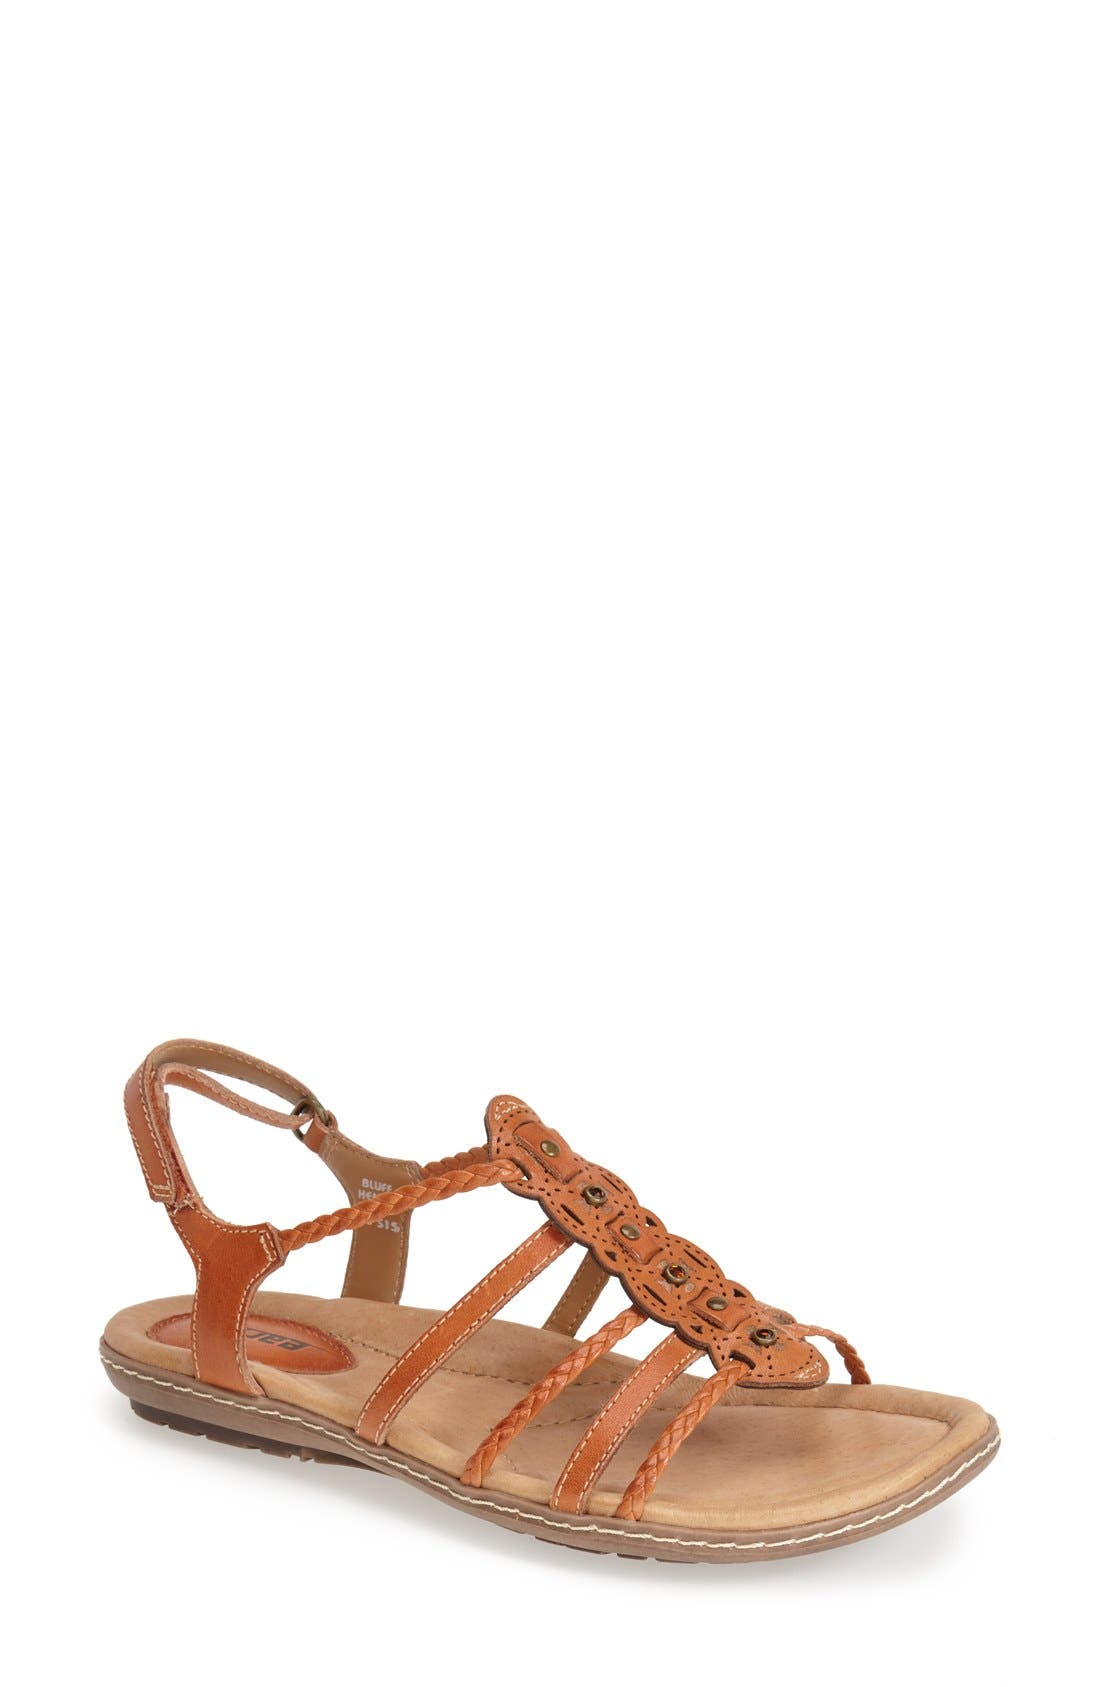 Alternate Image 1 Selected - Earth® 'Bluff' Sandal